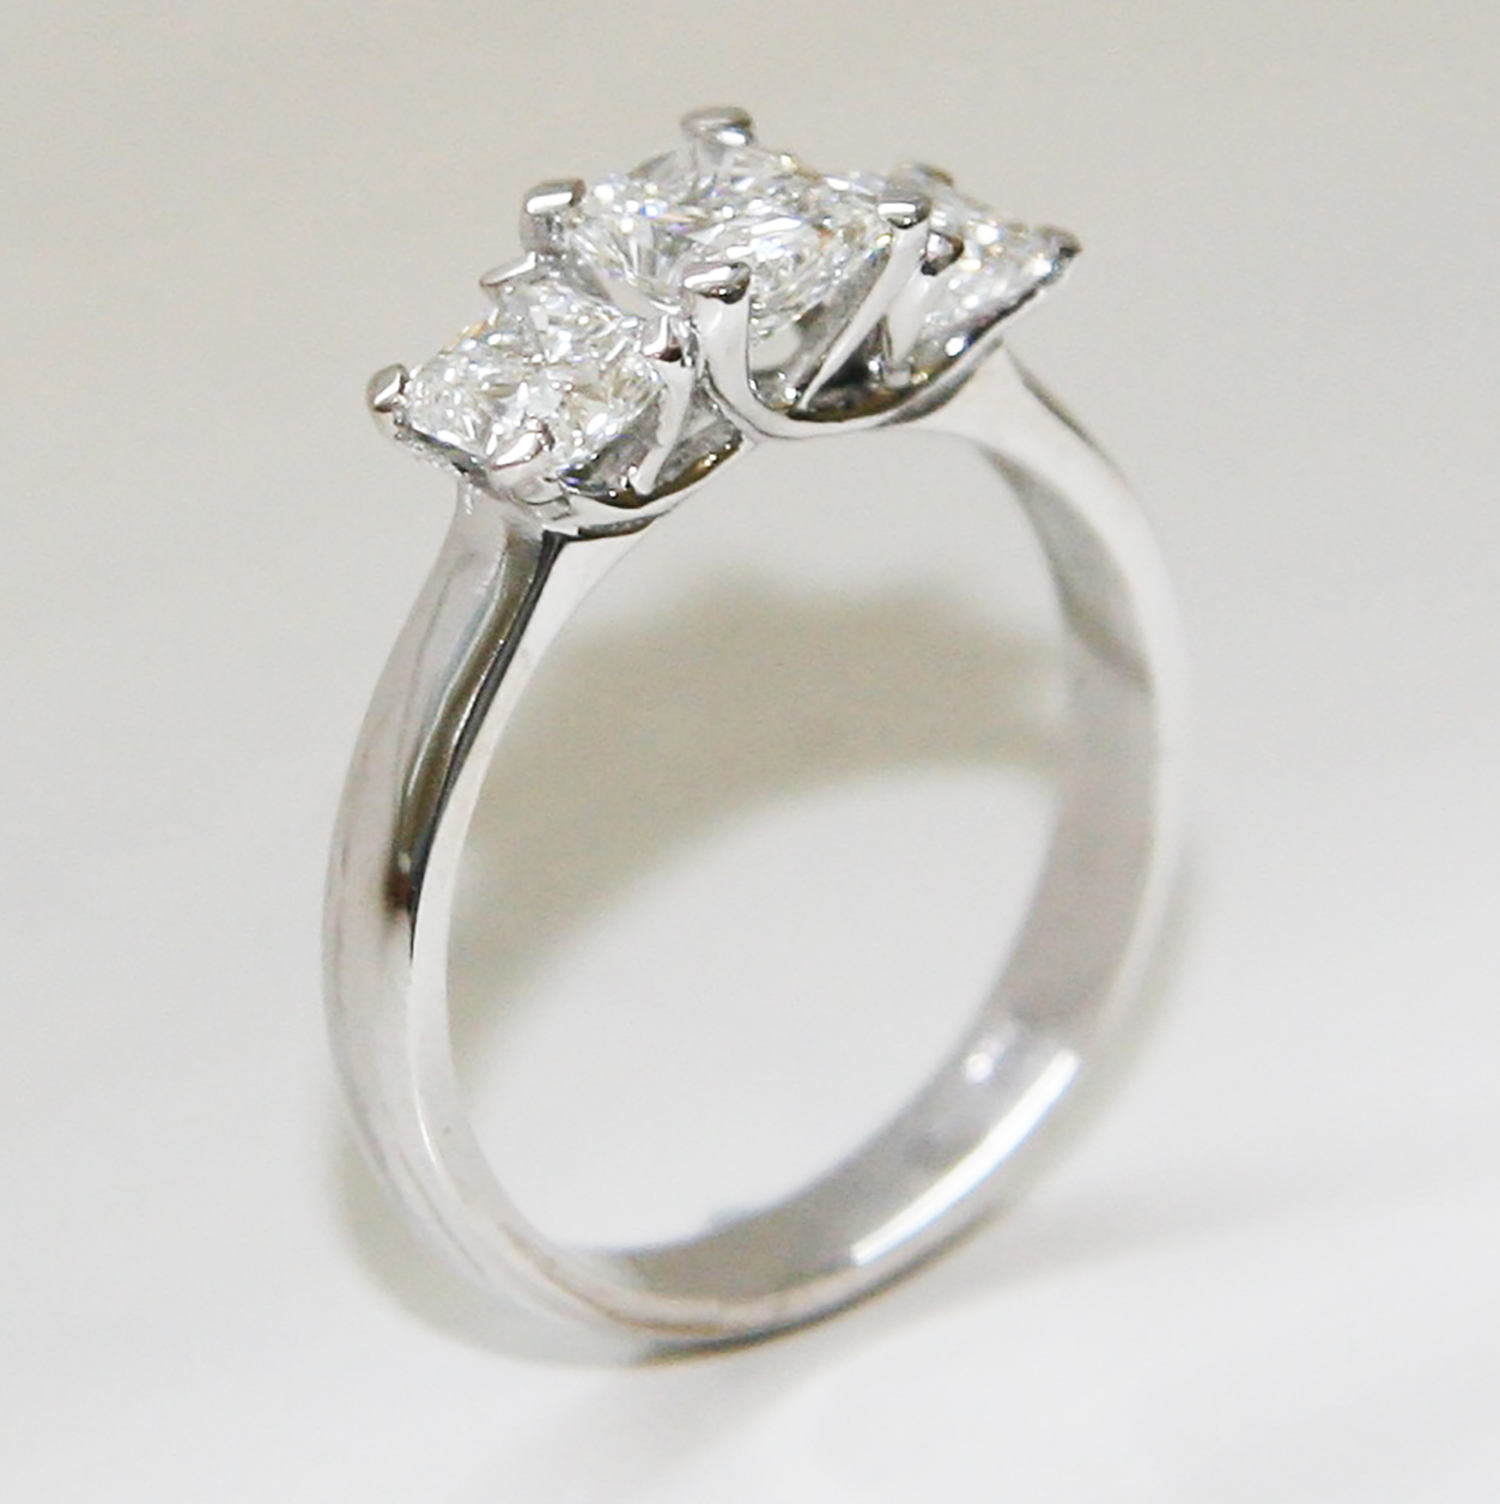 Diamond Rings - Engagment, Cocktail, Everyday Rings.Wear them always or not.It's up to you.